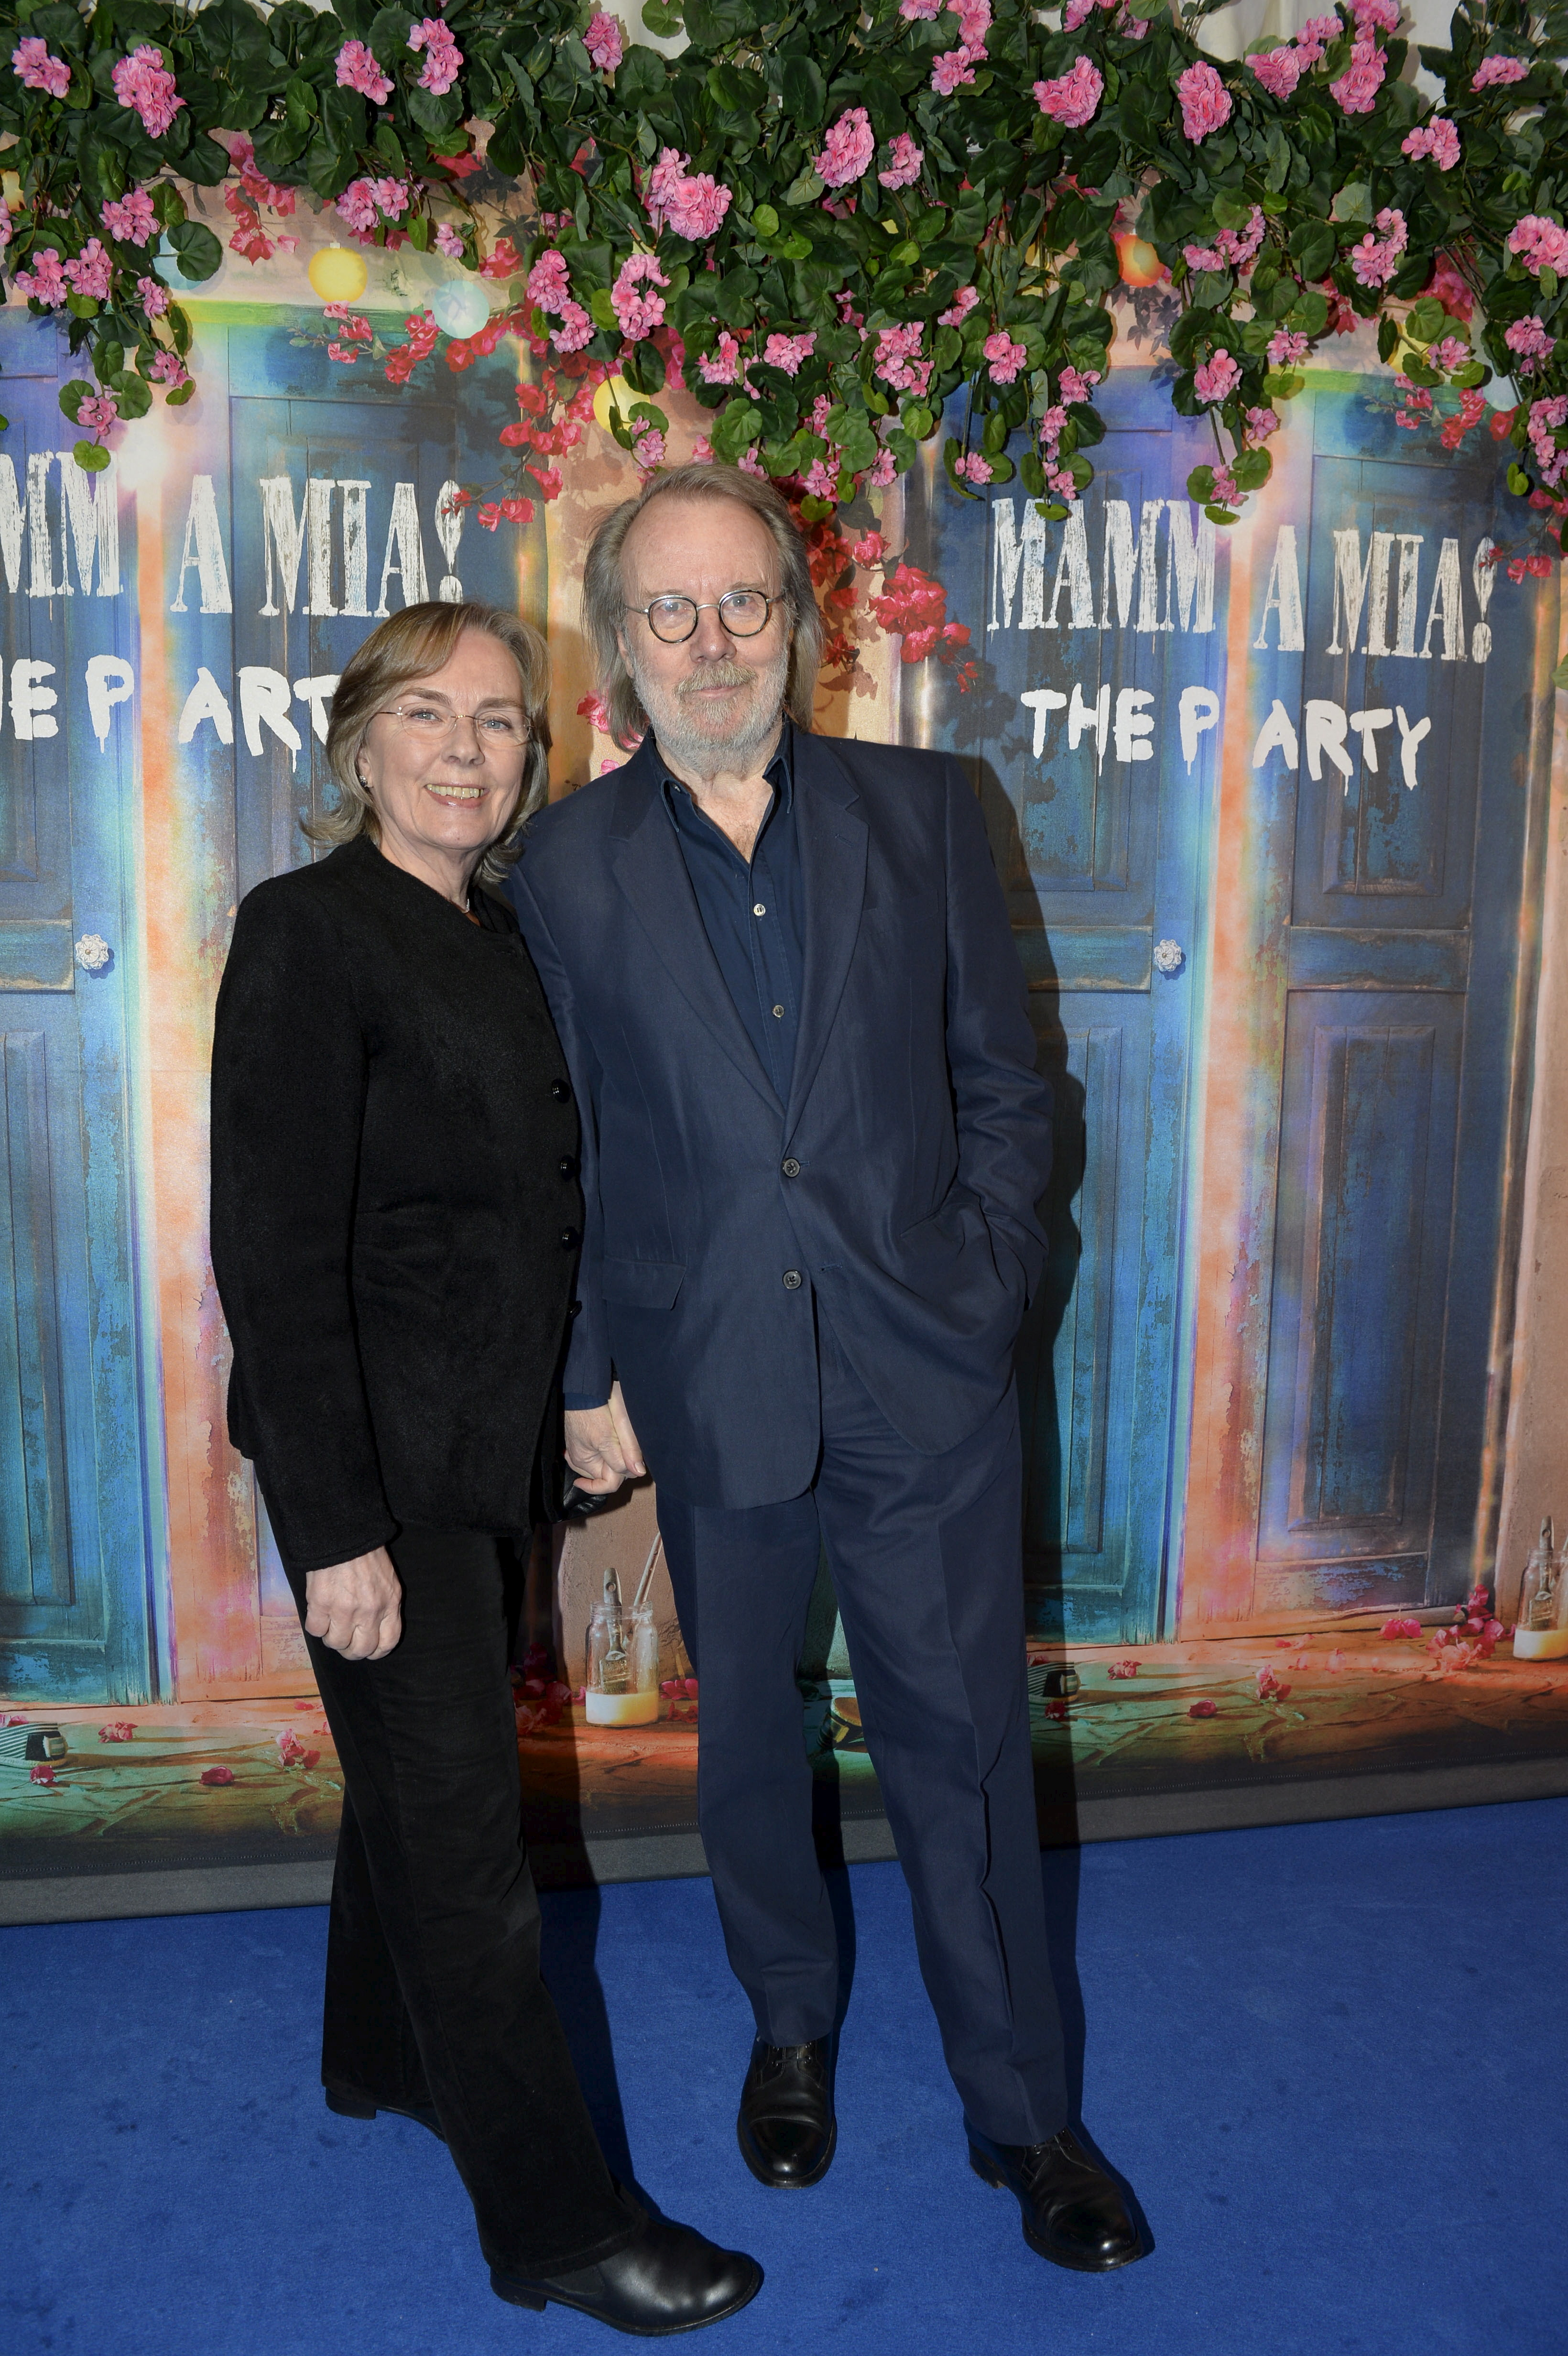 Former Abba member Benny Andersson and his wife Mona Norklit arrive for the premiere of